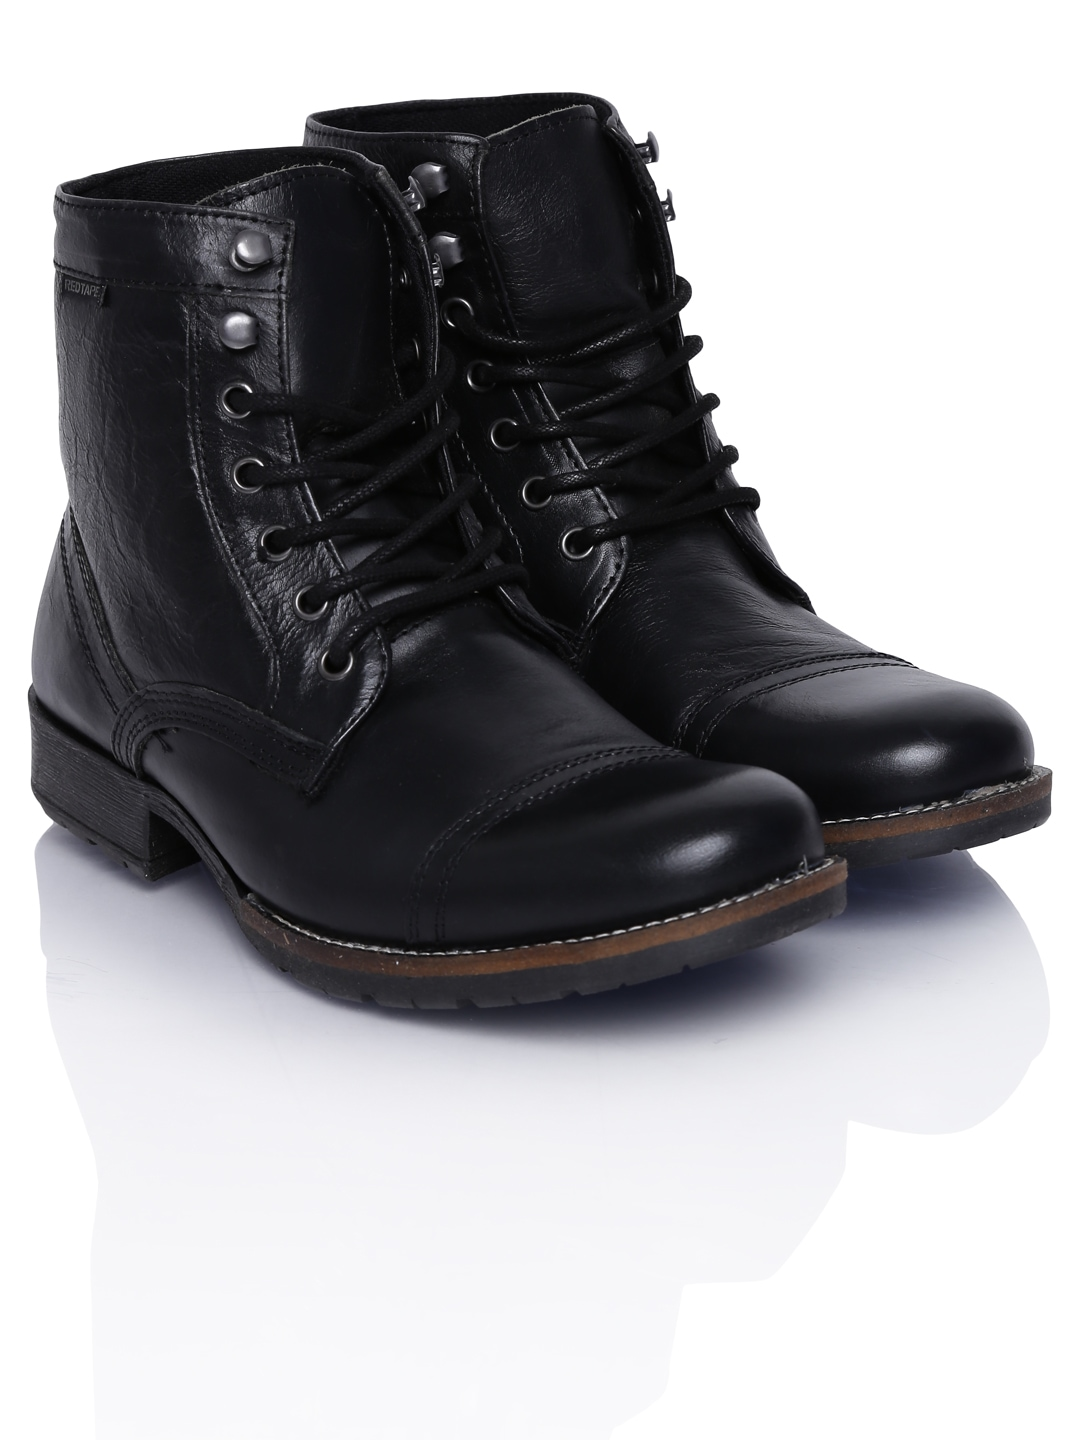 myntra red tape men black leather boots 563271 buy